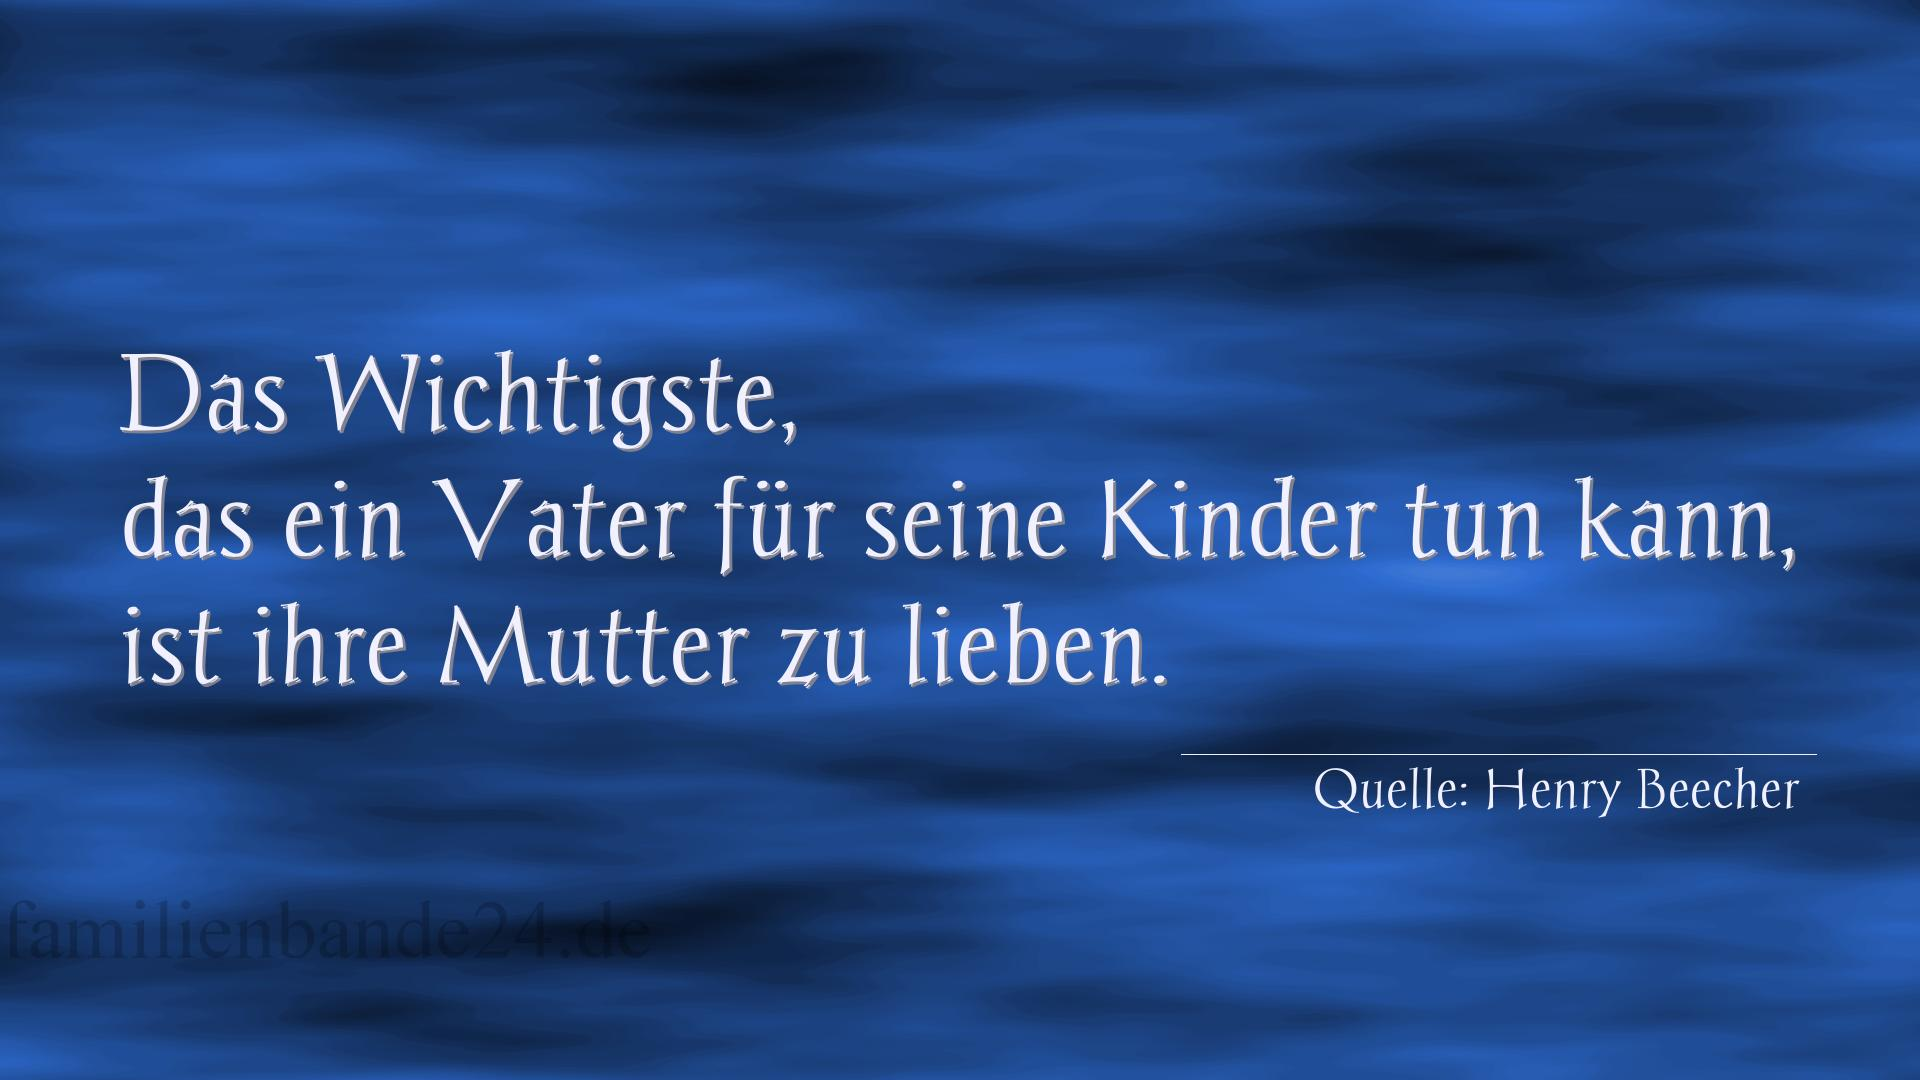 Familienspruch Nr. 353, Quelle Henry Beecher